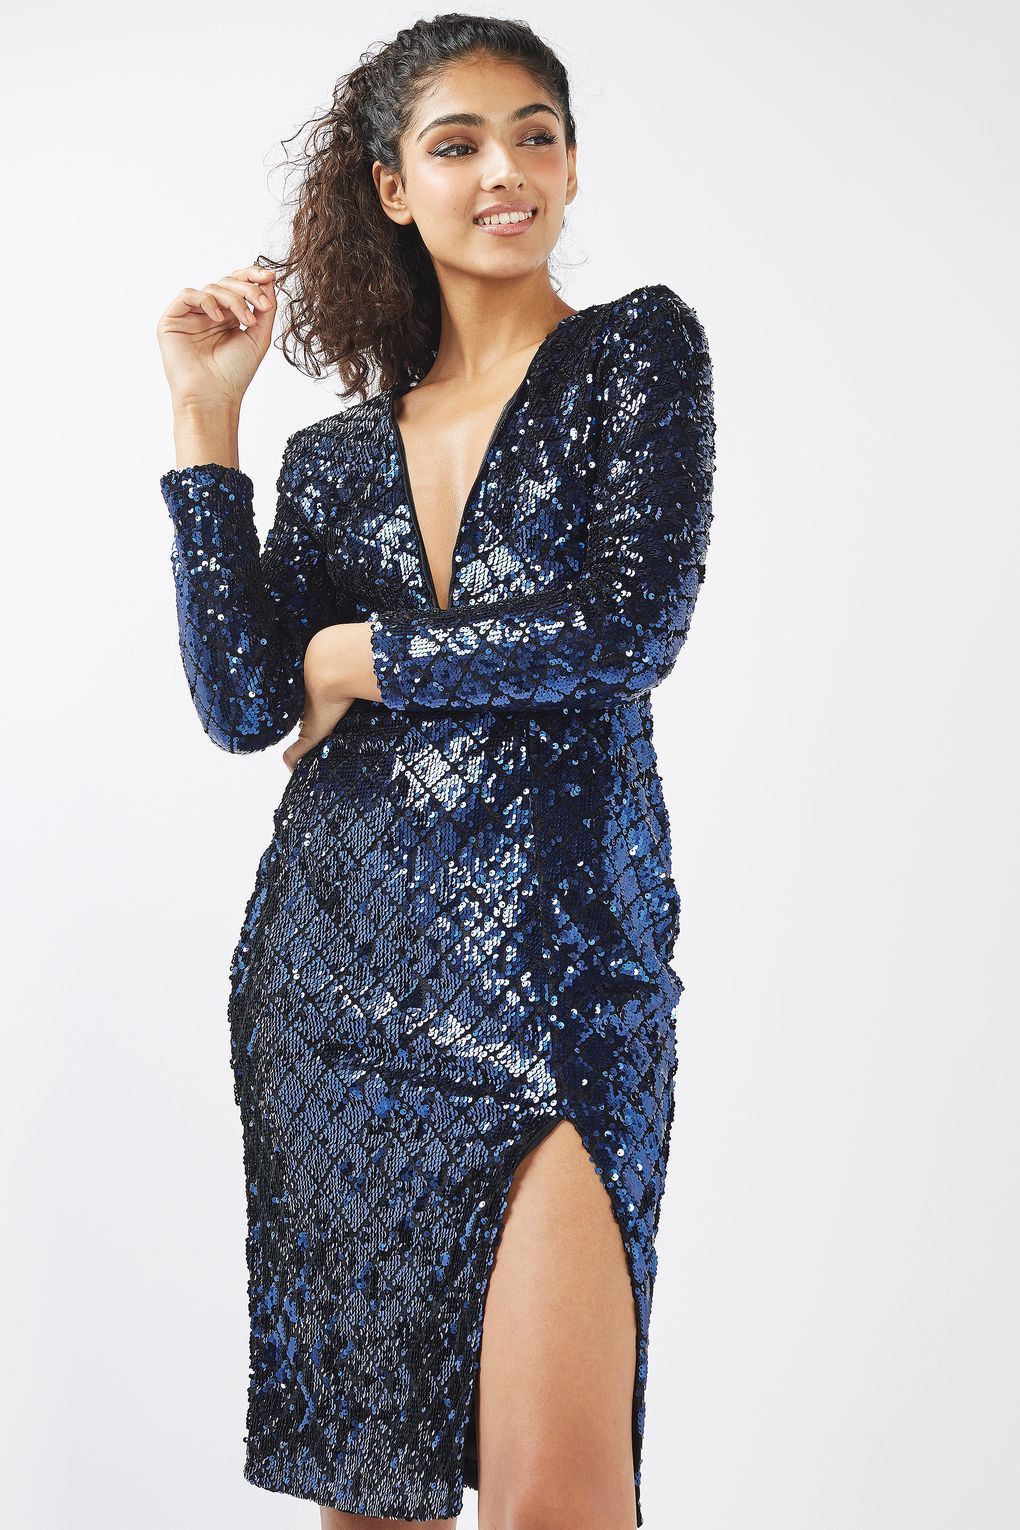 8b2a7e653304 Long Sleeve Textured Sequin Dress by Rare | My Style Pinboard ...